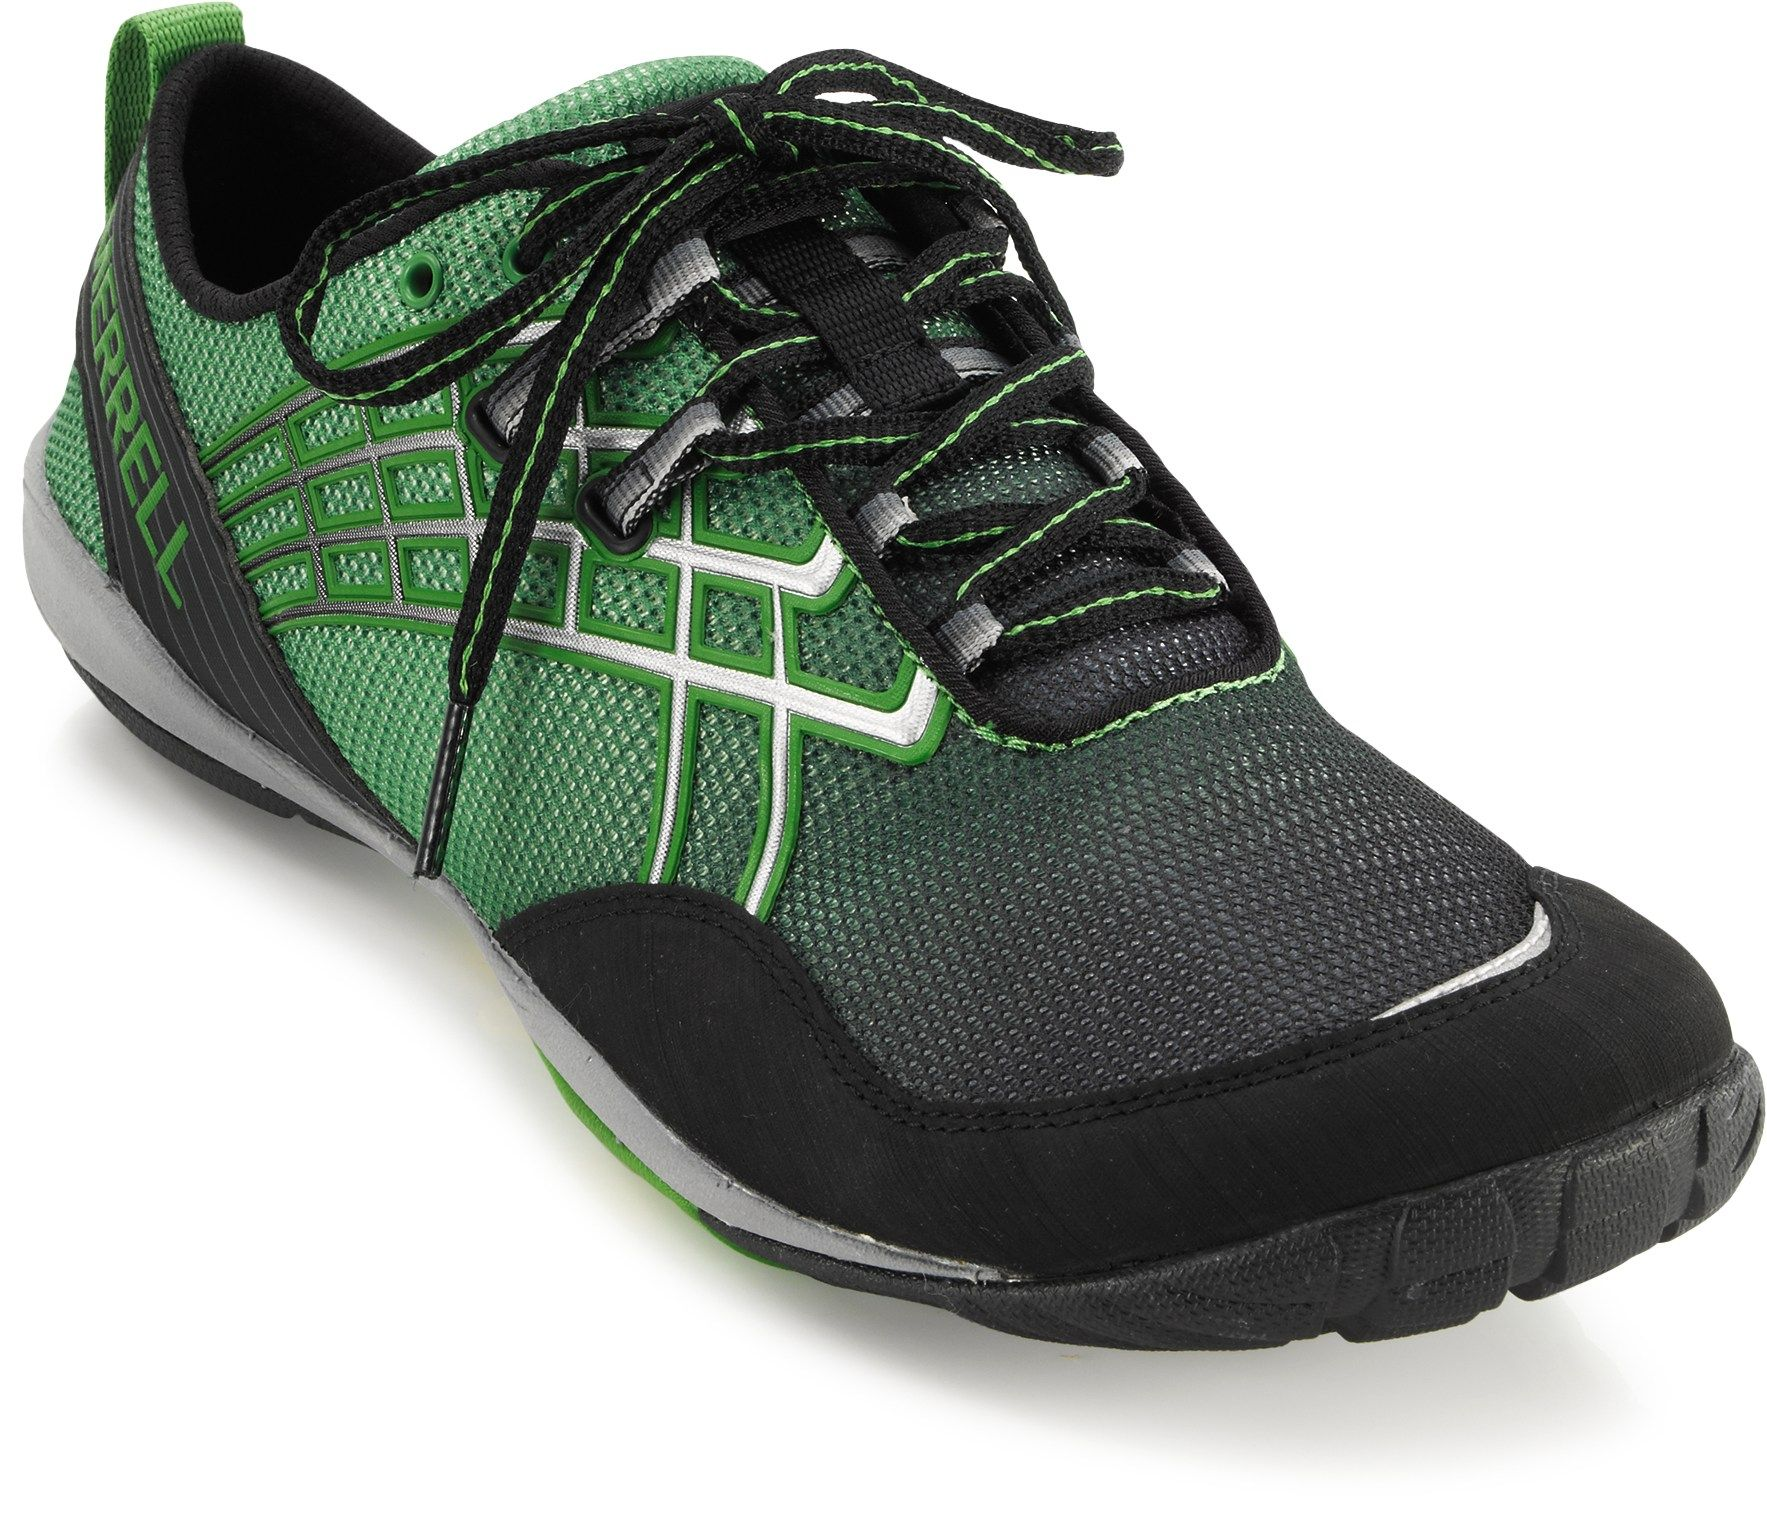 Merrell Bare Access Arc 2 Running Shoes - Women's - Free Shipping at  REI.com | Gear to Move My Rear | Pinterest | Running shoes, Running and  Free running ...